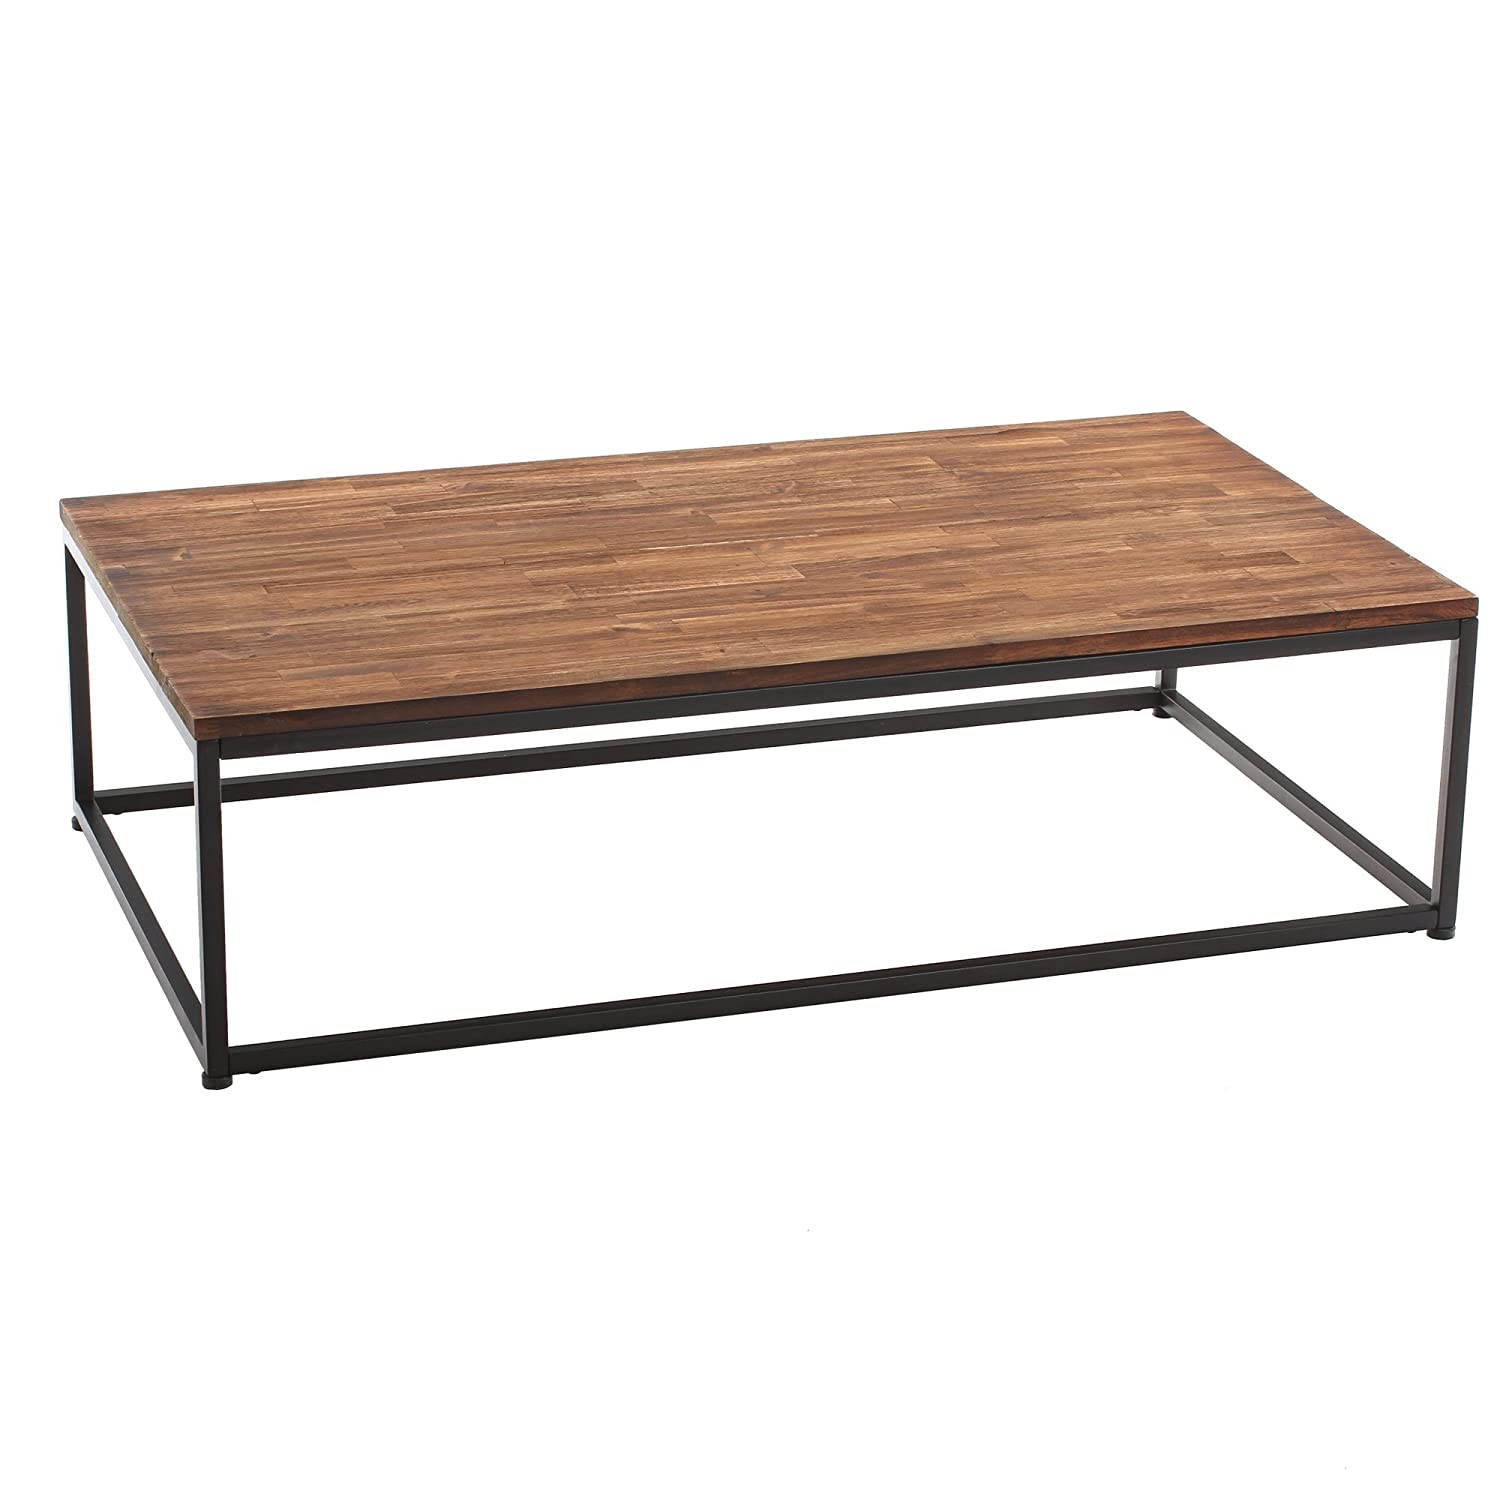 Marvelous table basse fer et bois 13 table basse de - Tables basses de salon en bois ...